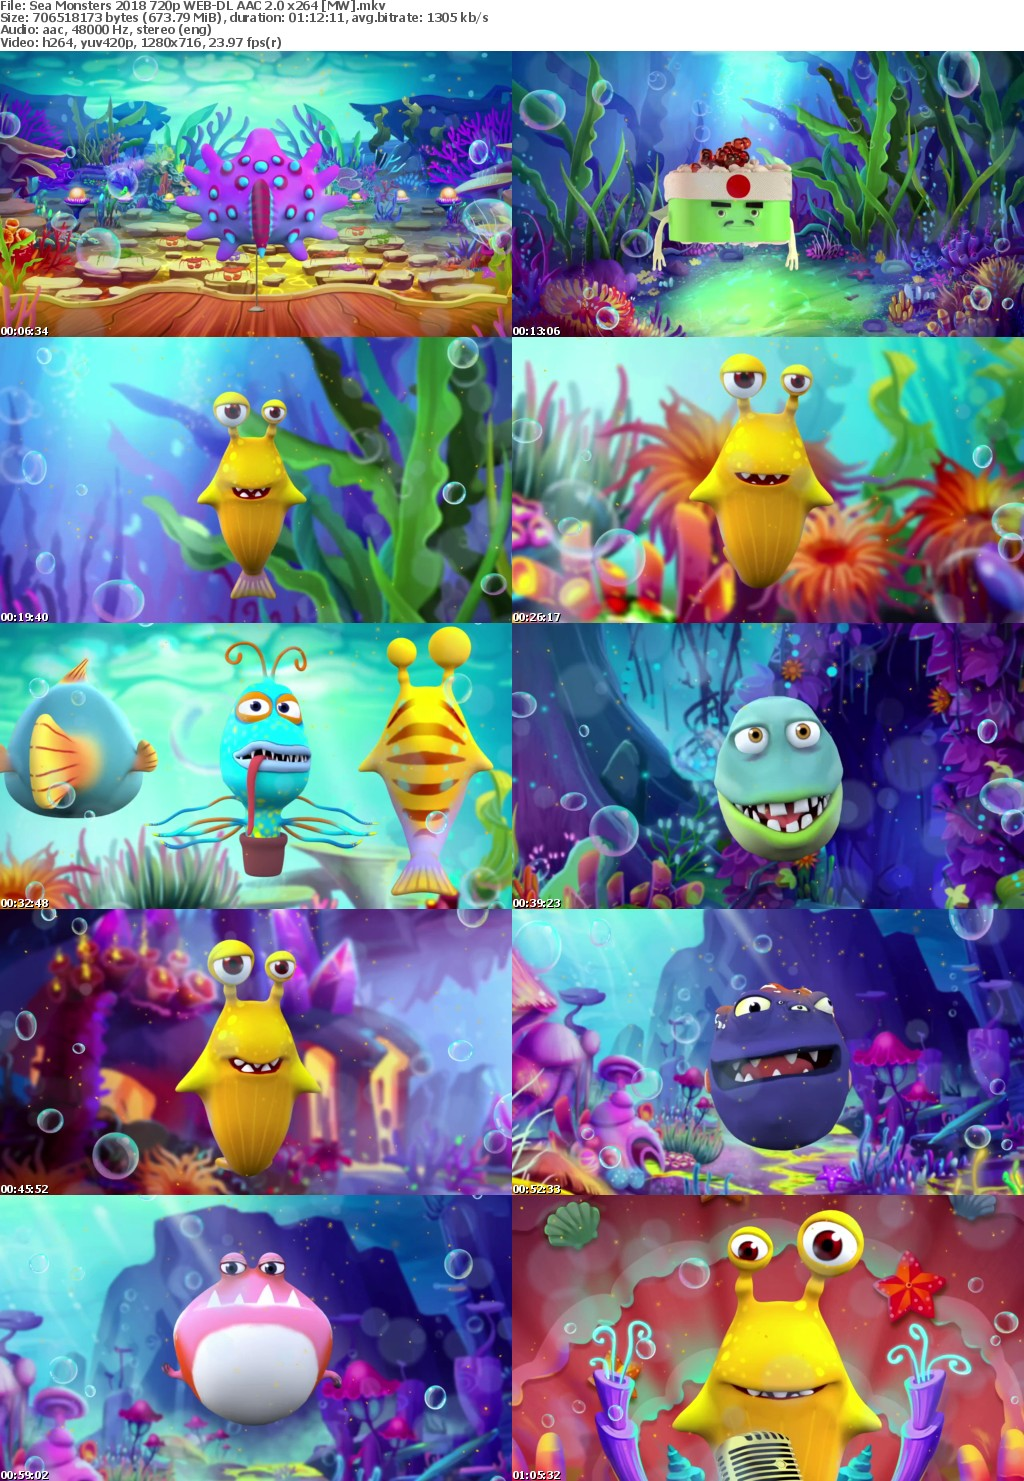 Sea Monsters (2018) 720p WEB-DL AAC 2.0 x264 MW